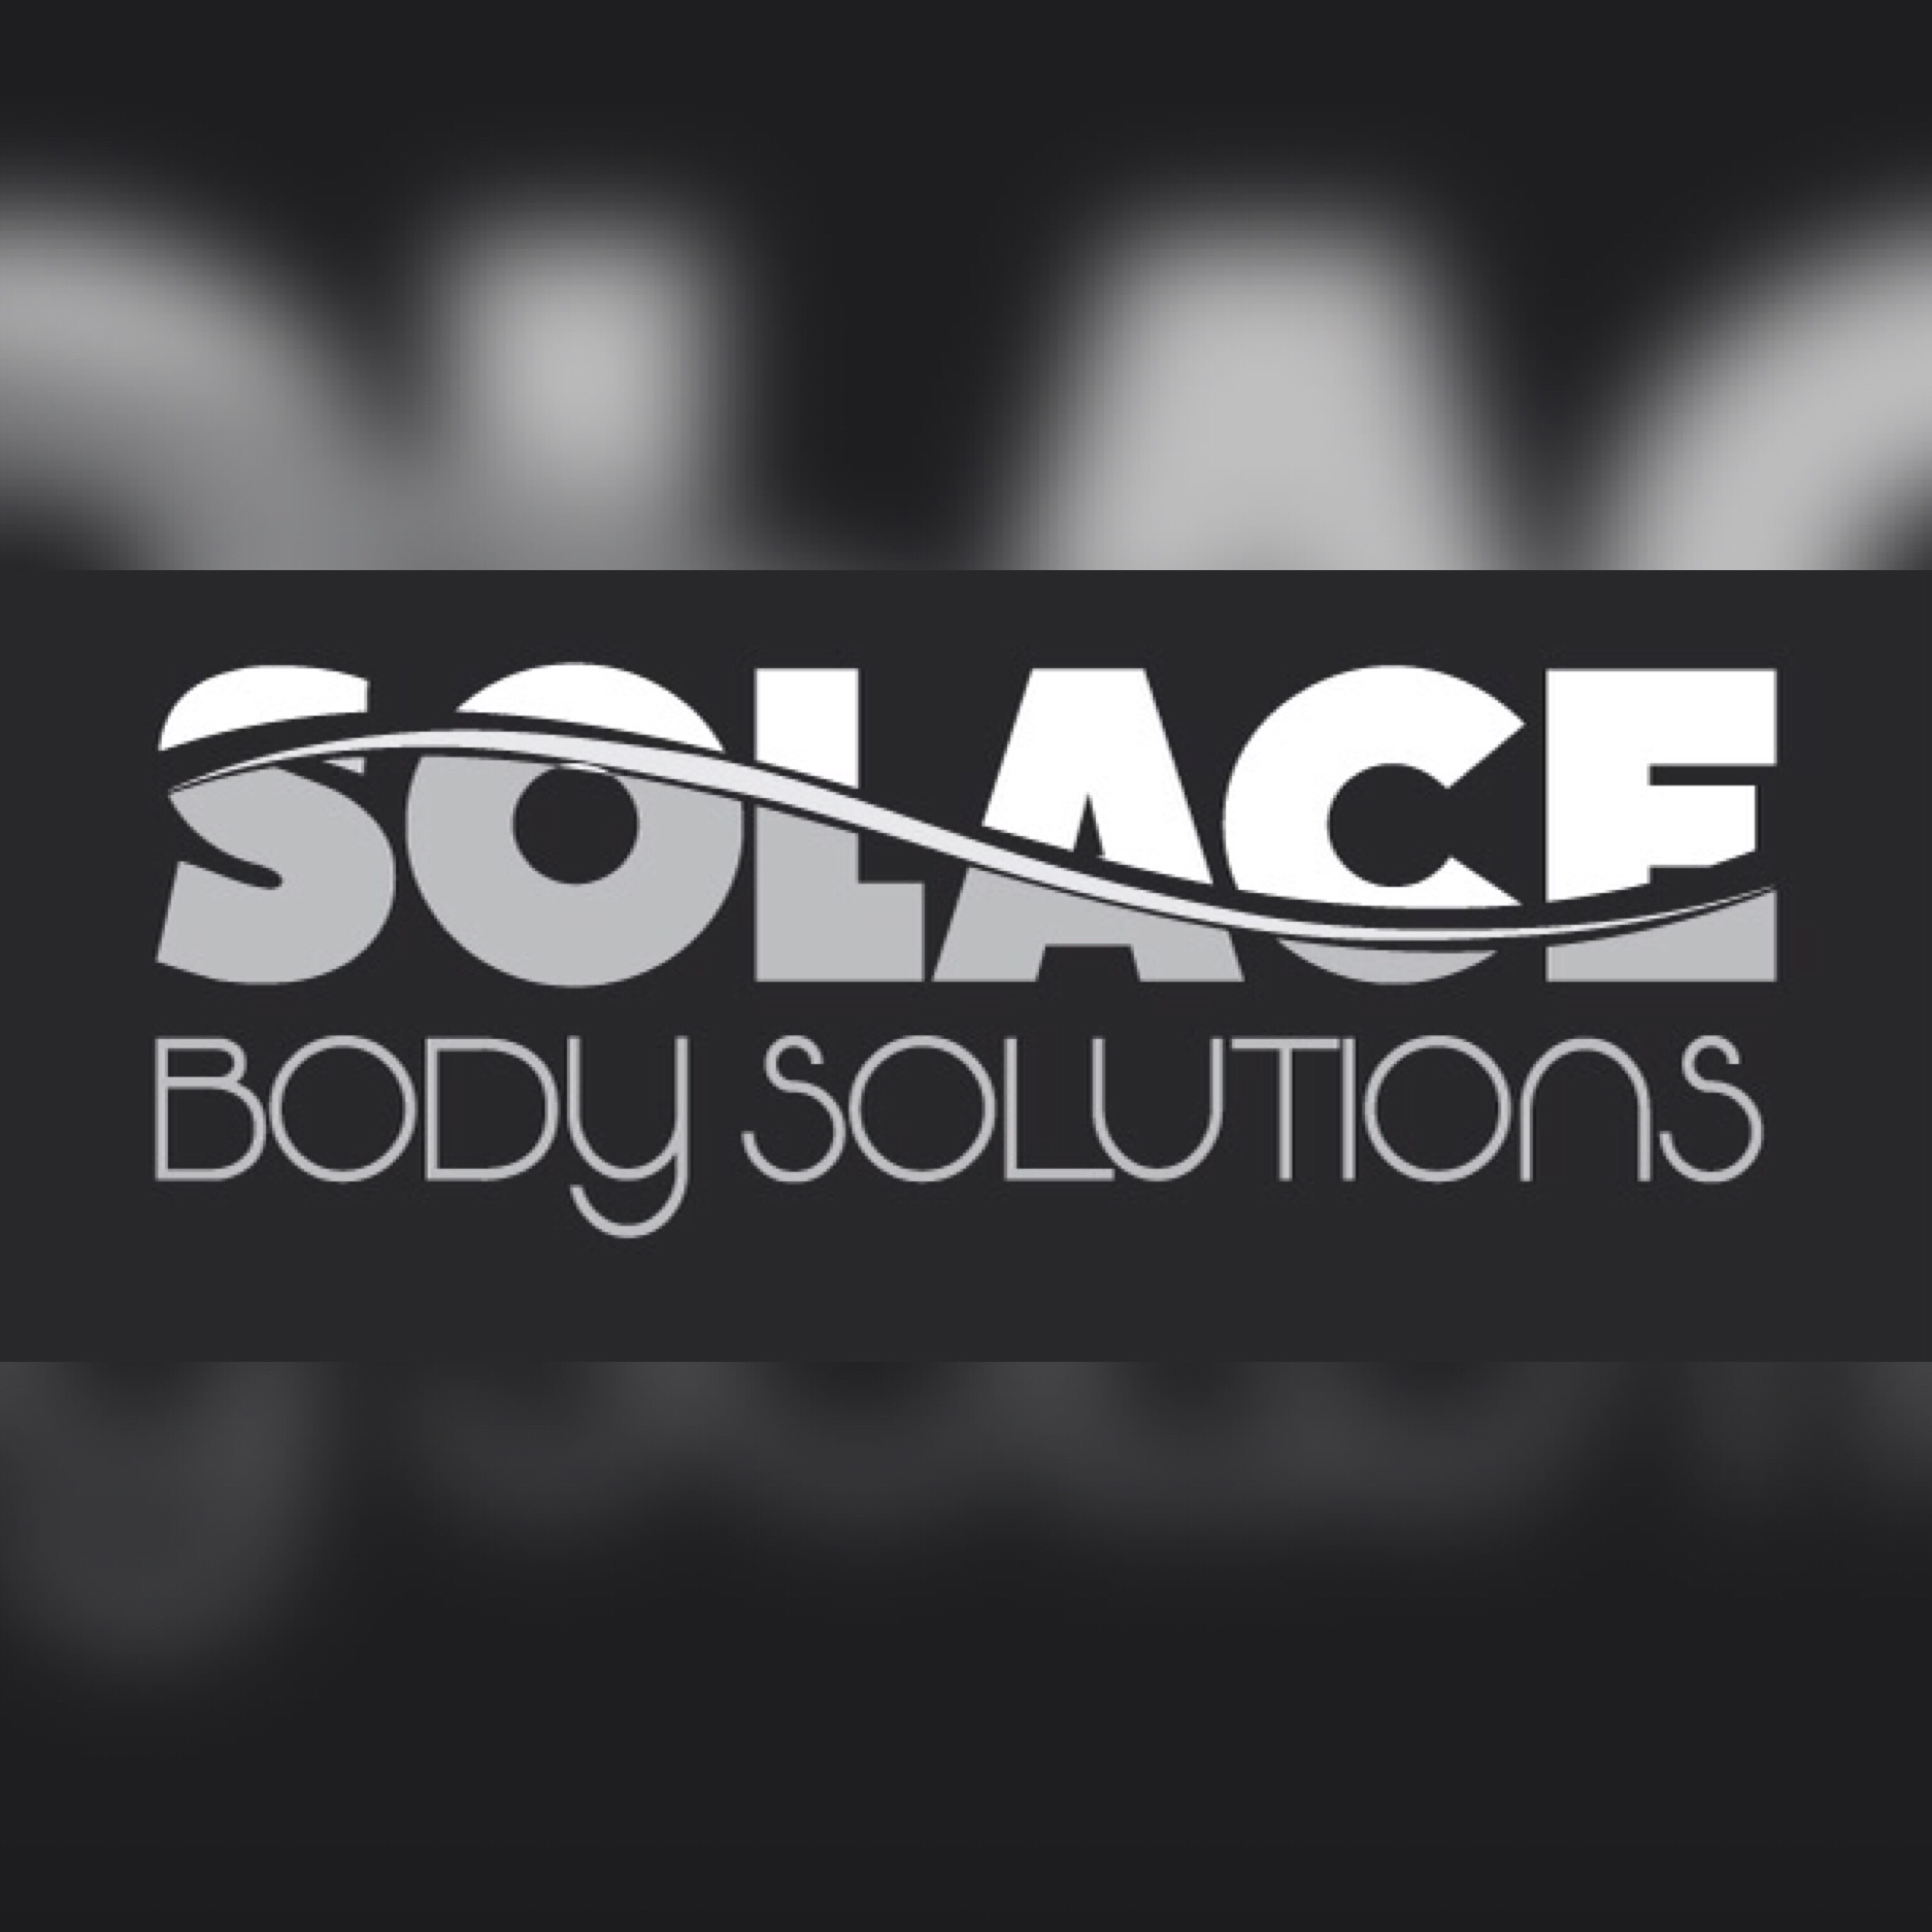 Solace Body Solutions